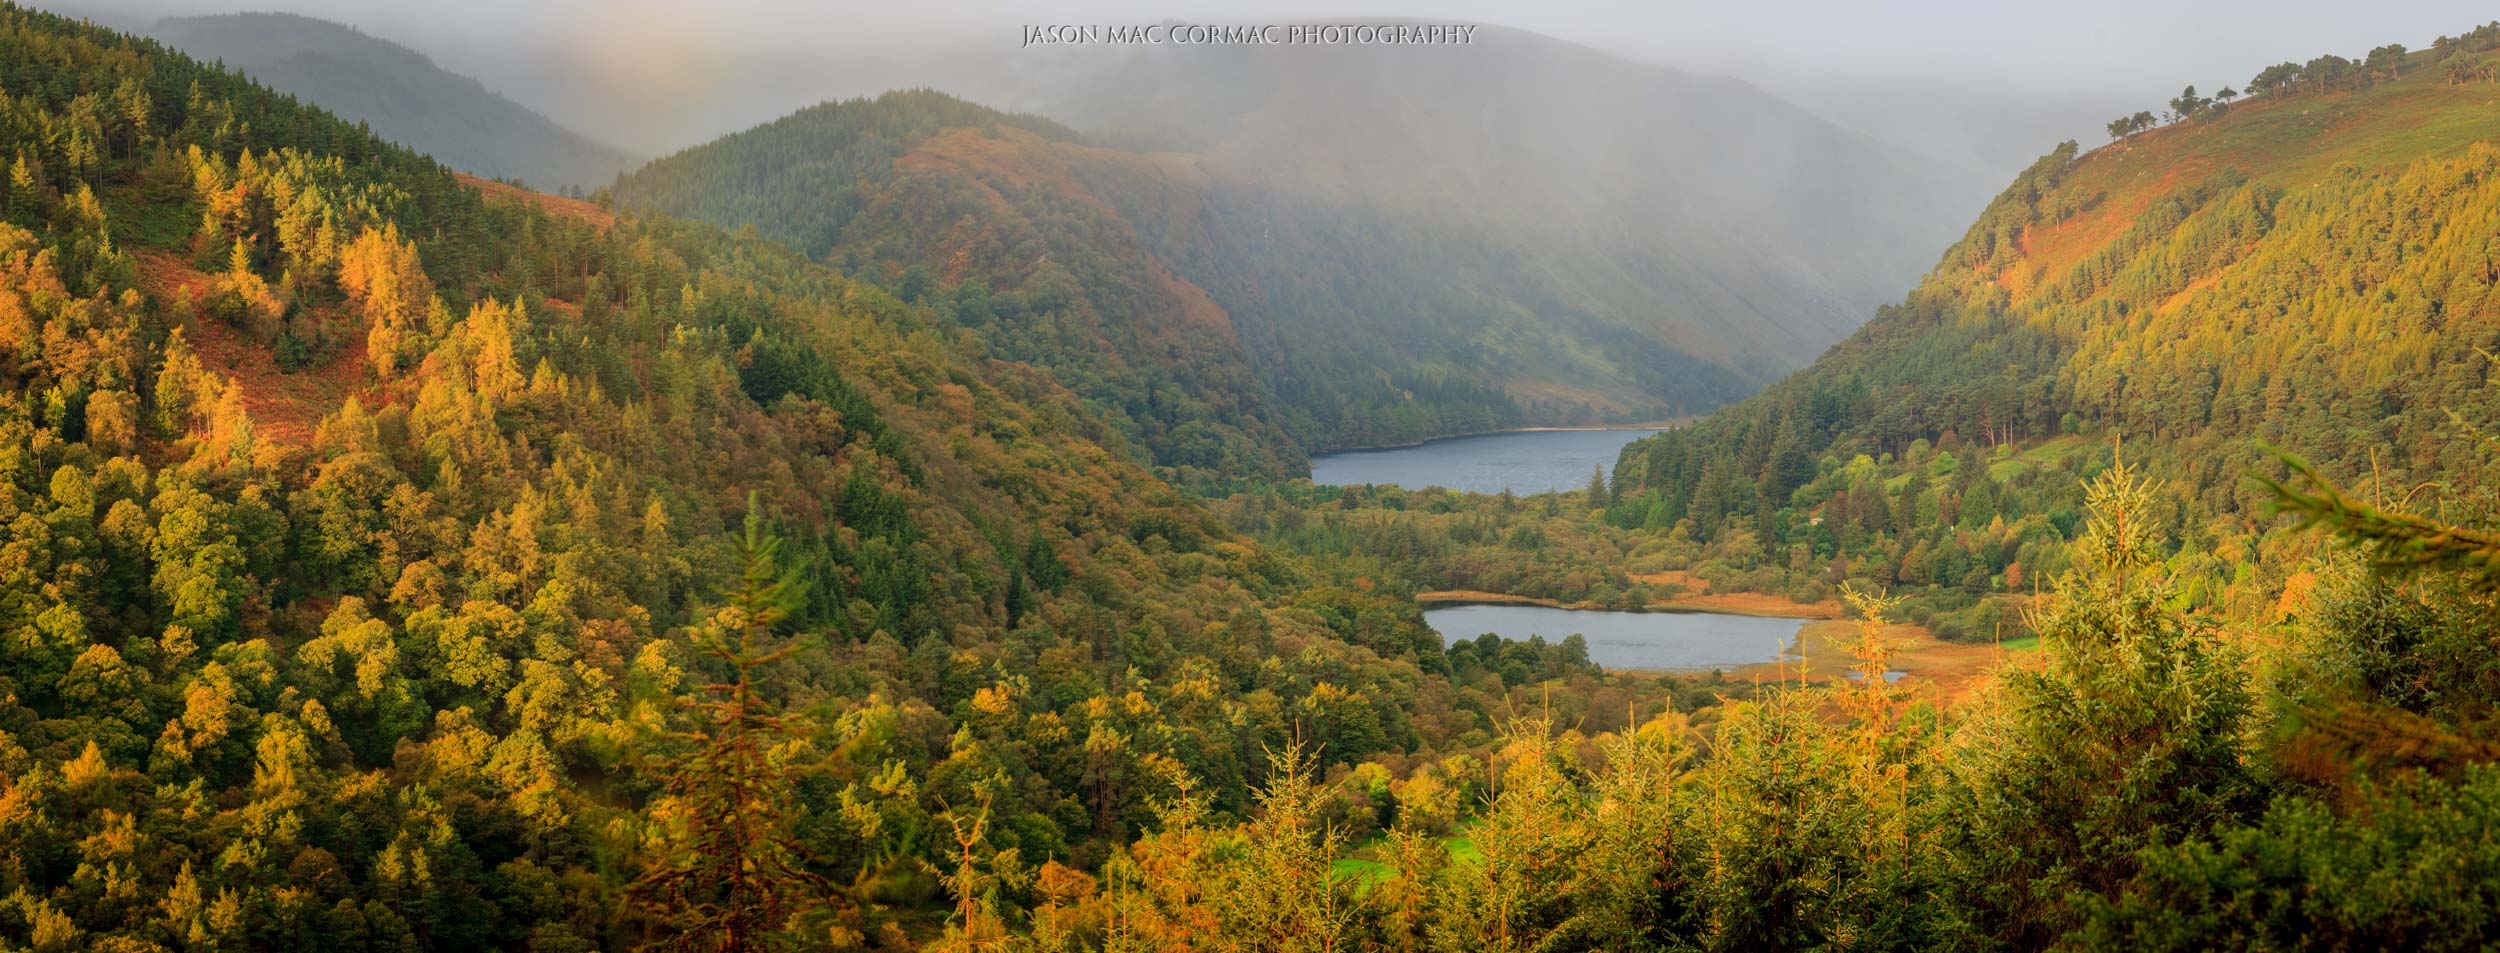 09. Glendalough Autumn